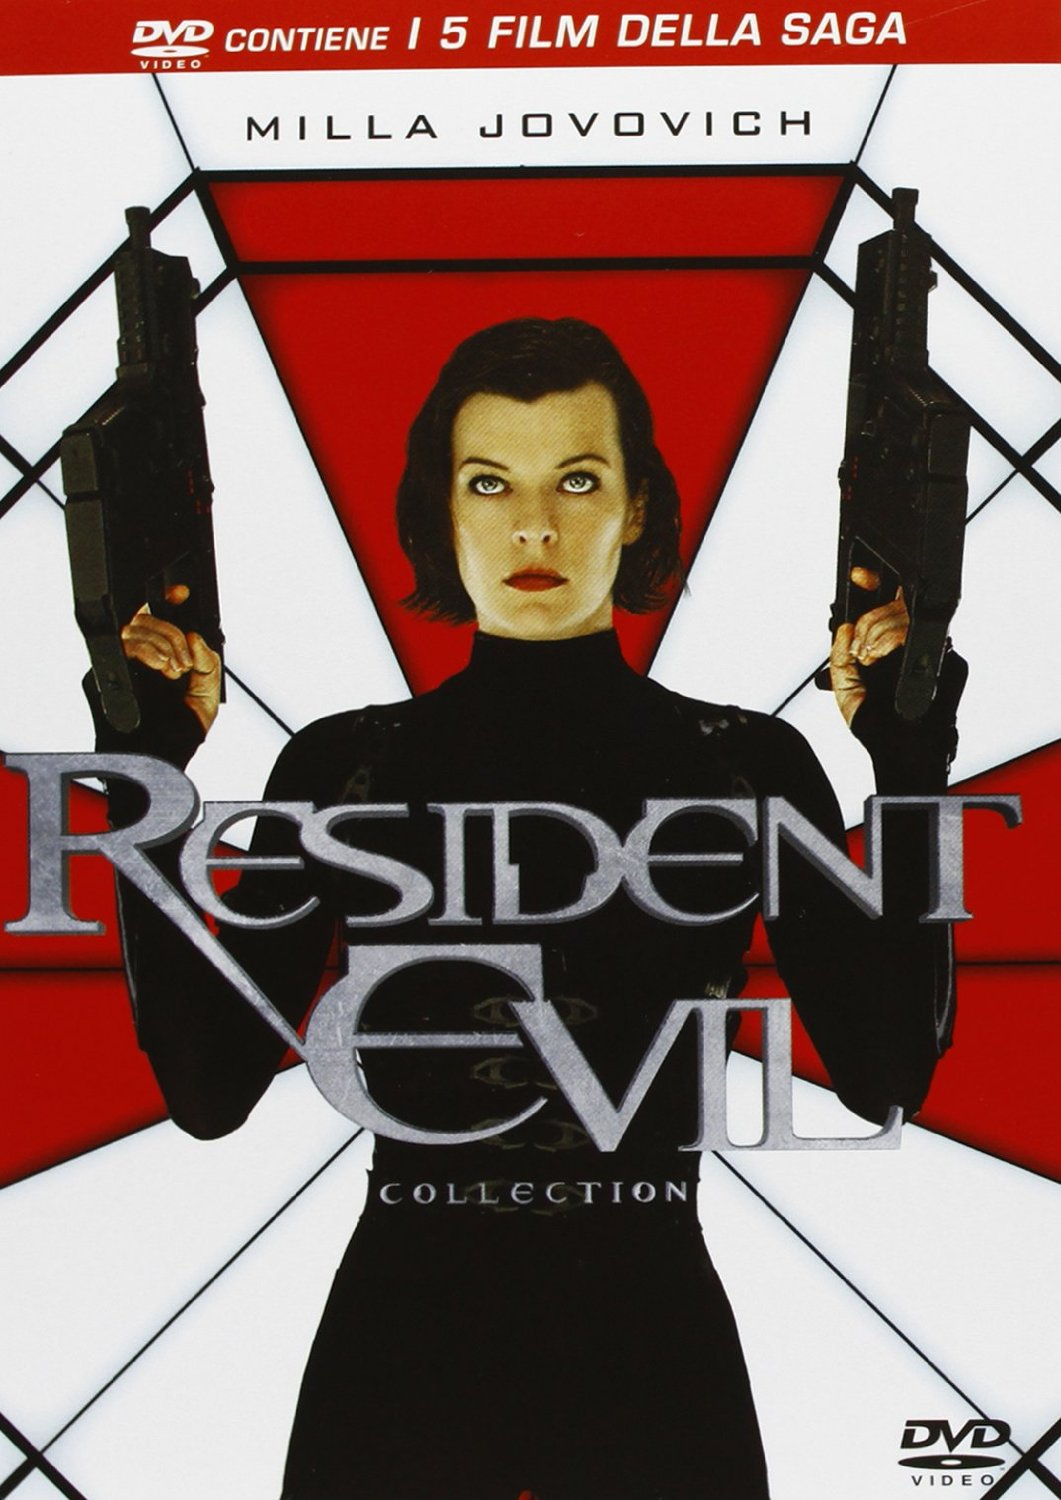 Resident evil collection dvd 5 film